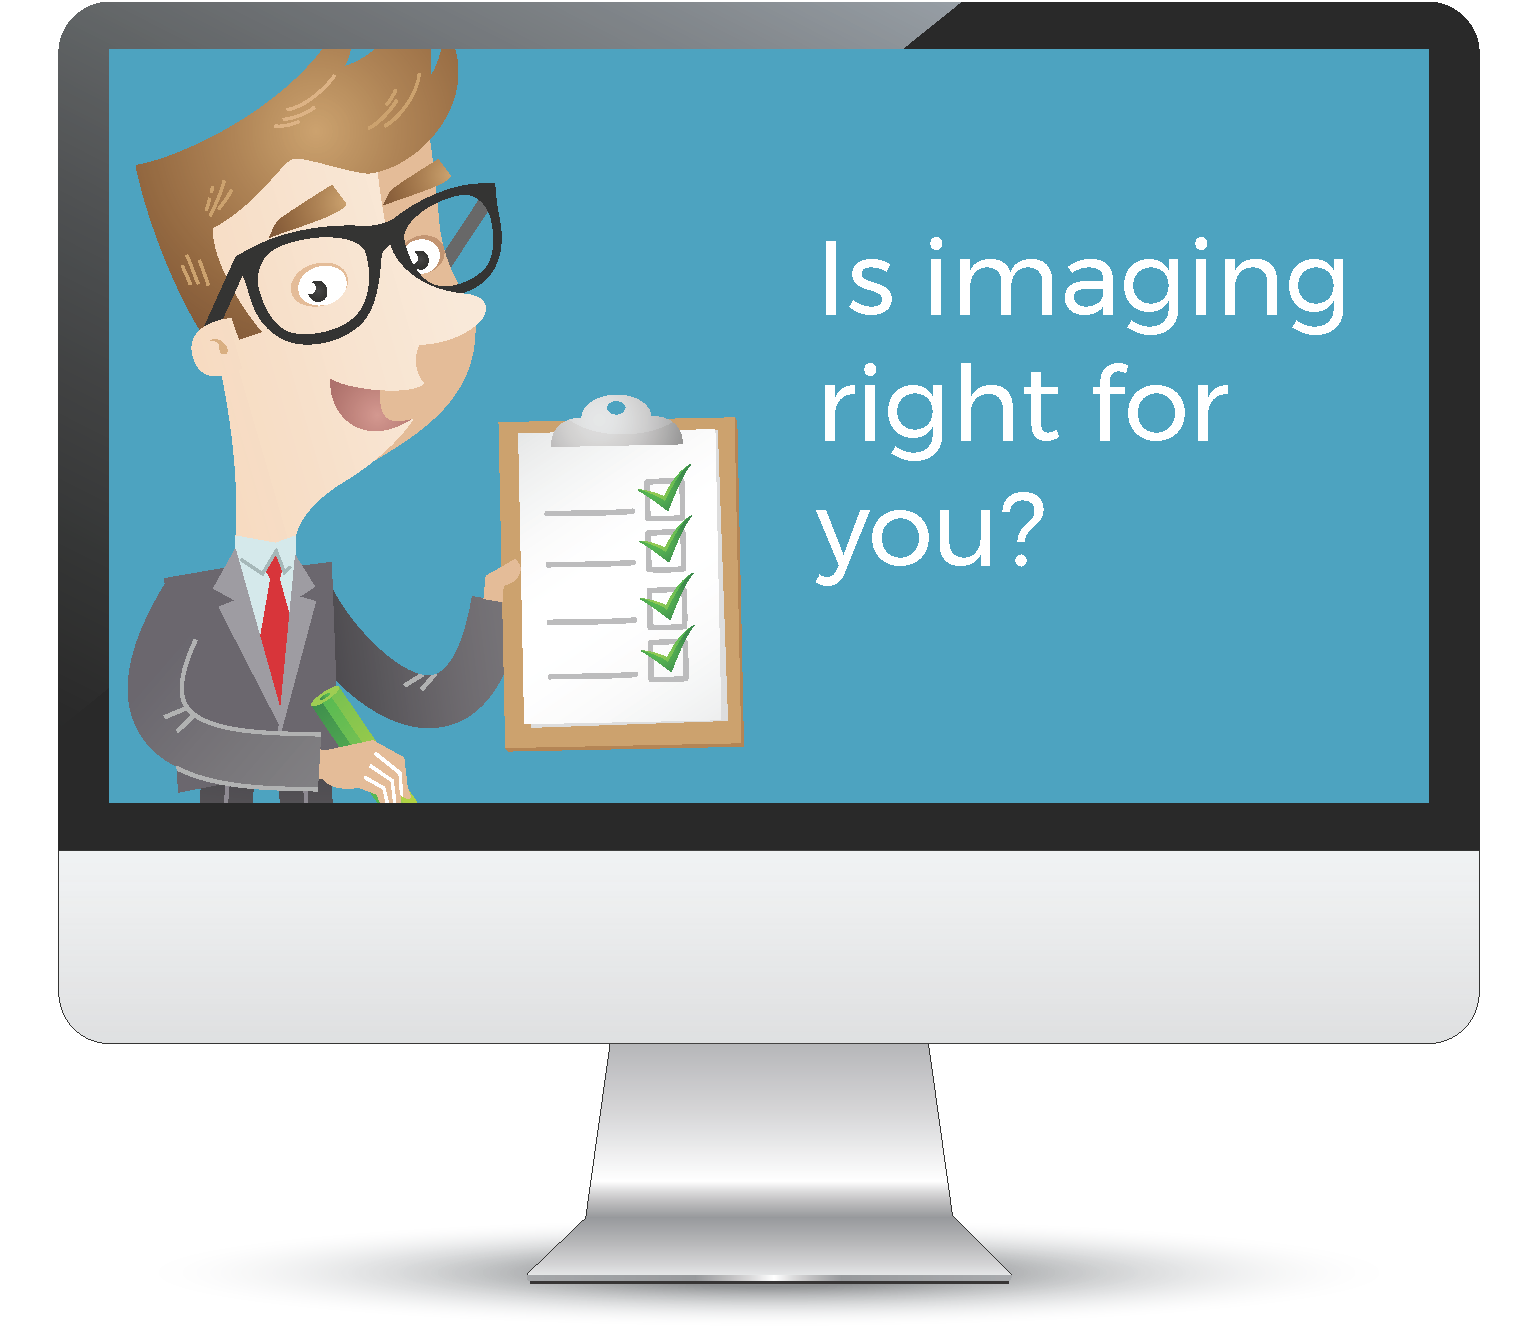 Is imaging right for you